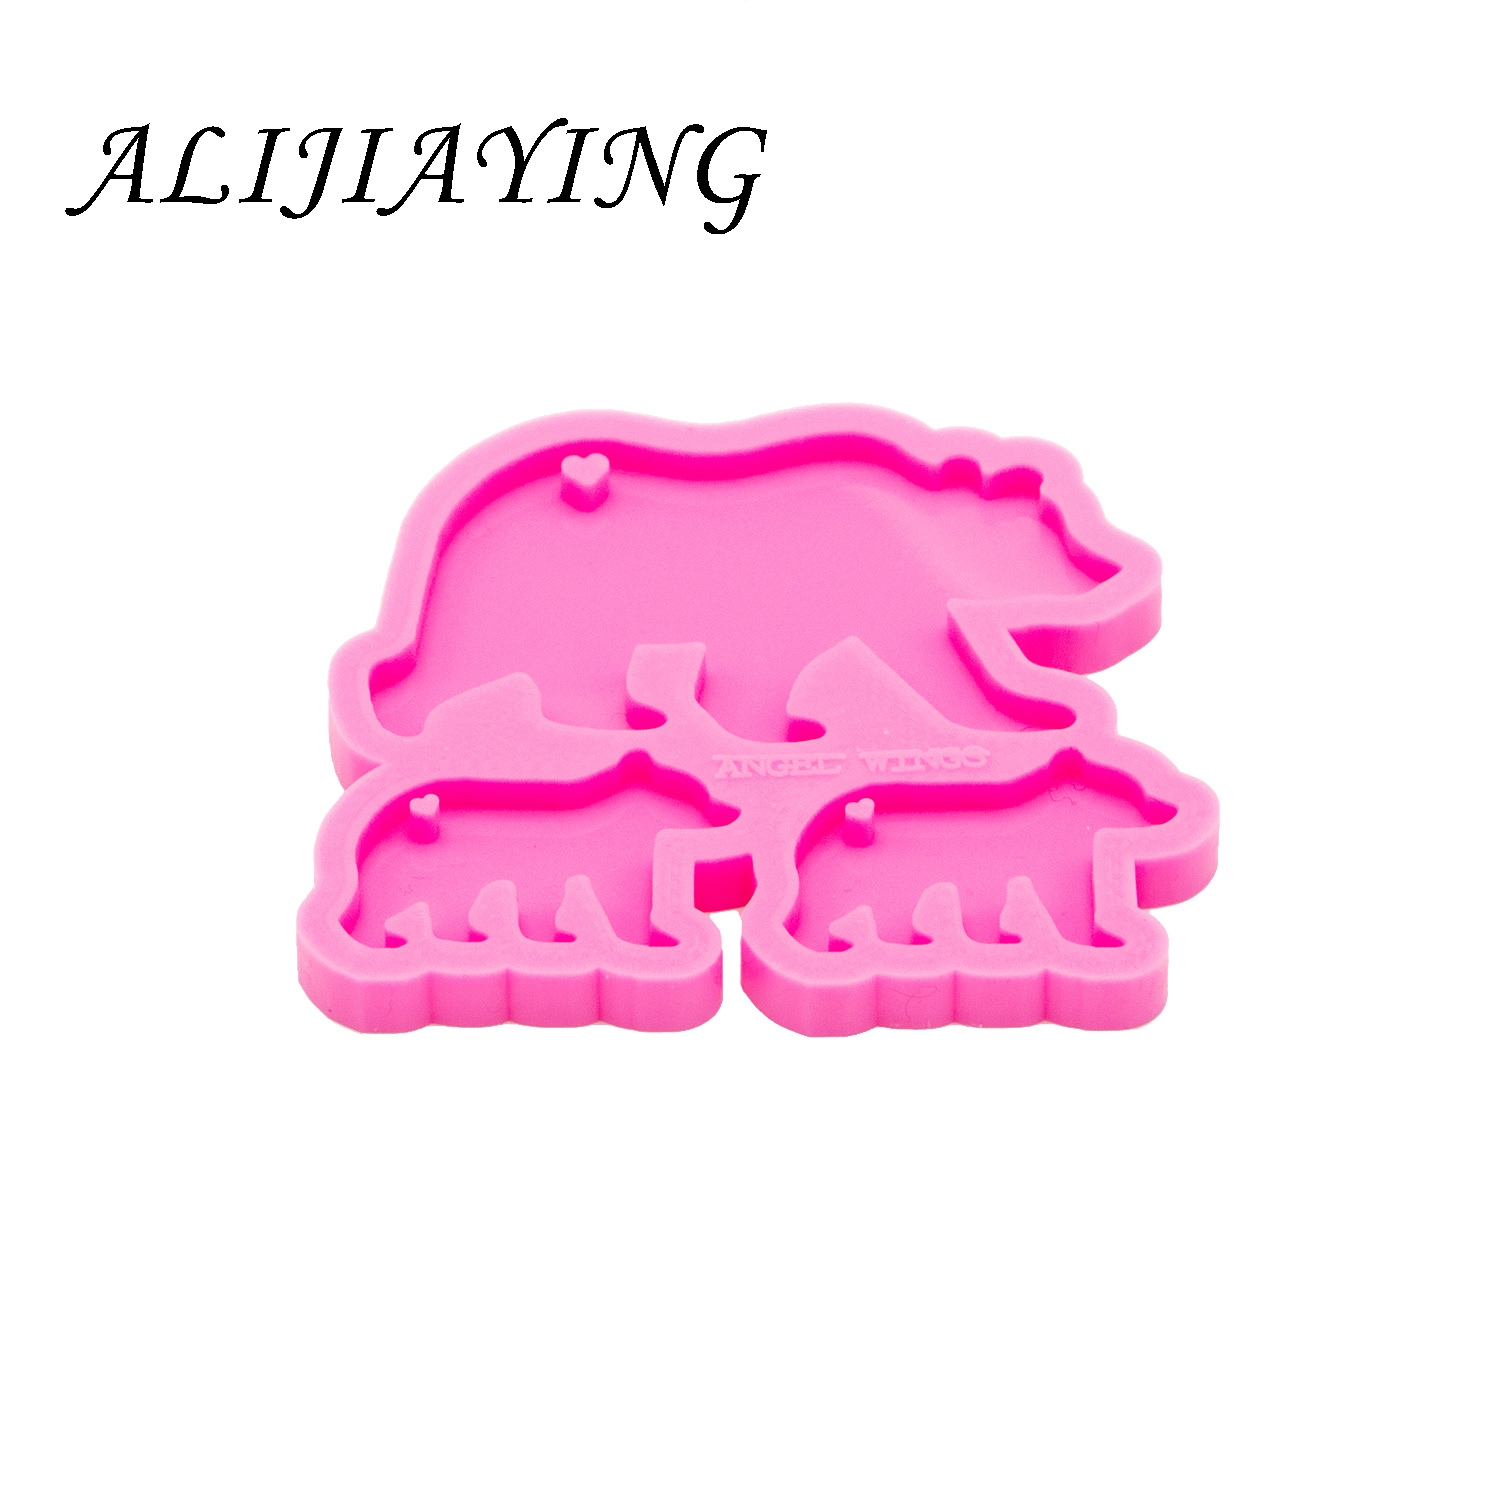 Shiny Bow Silicone Mold Making DIY Keychain Pendant Epoxy Resin Crafting Moulds